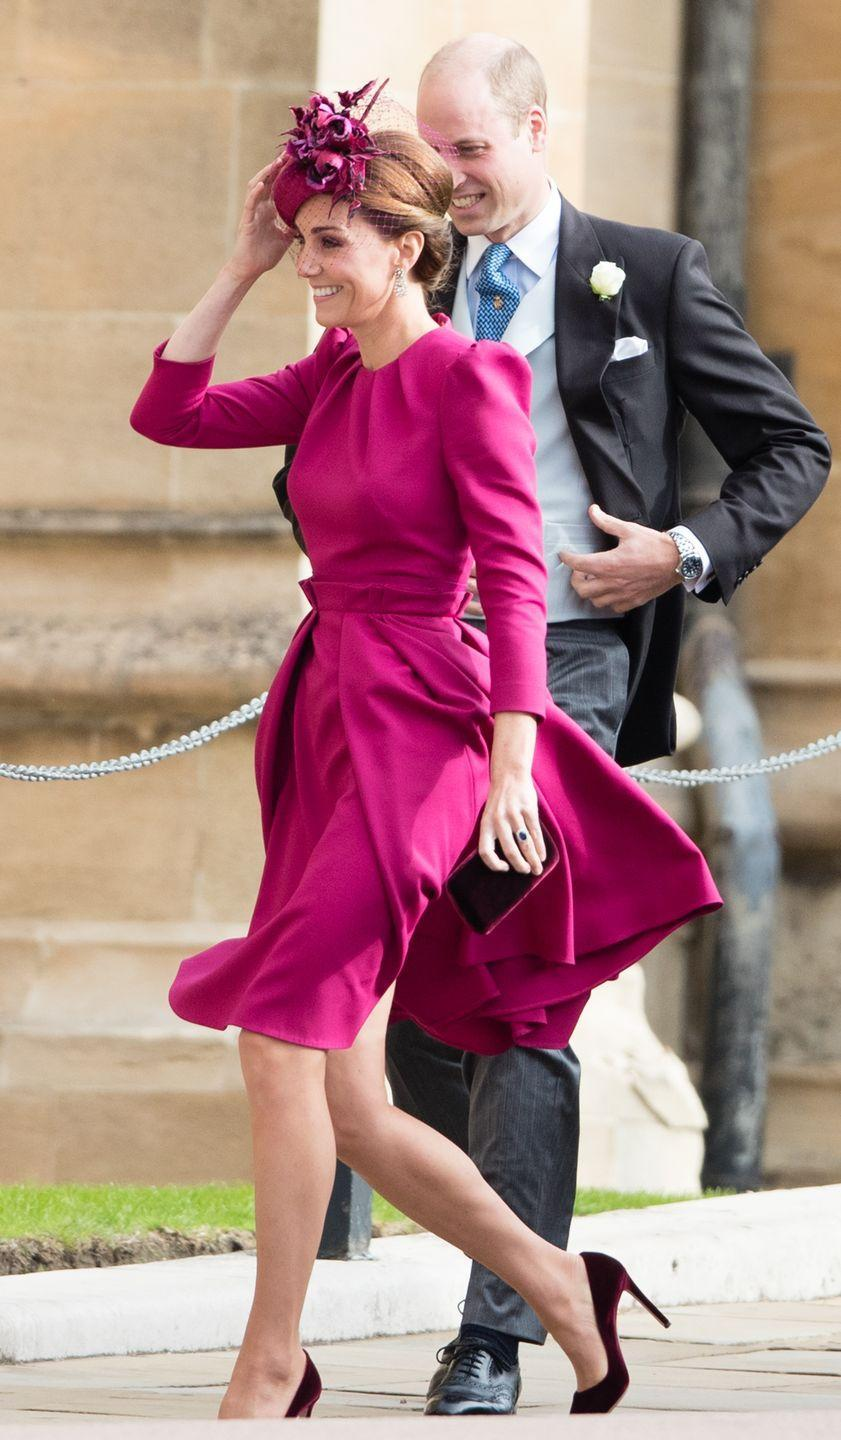 """<p>McQueen seems to be the royal wedding designer of choice. The Duchess wore this <a href=""""https://www.townandcountrymag.com/society/tradition/a23455715/kate-middleton-princess-eugenie-royal-wedding-outfit/"""" rel=""""nofollow noopener"""" target=""""_blank"""" data-ylk=""""slk:raspberry-colored dress"""" class=""""link rapid-noclick-resp"""">raspberry-colored dress</a> to her cousin-in-law, Princess Eugenie's wedding to Jack Brooksbank. </p>"""